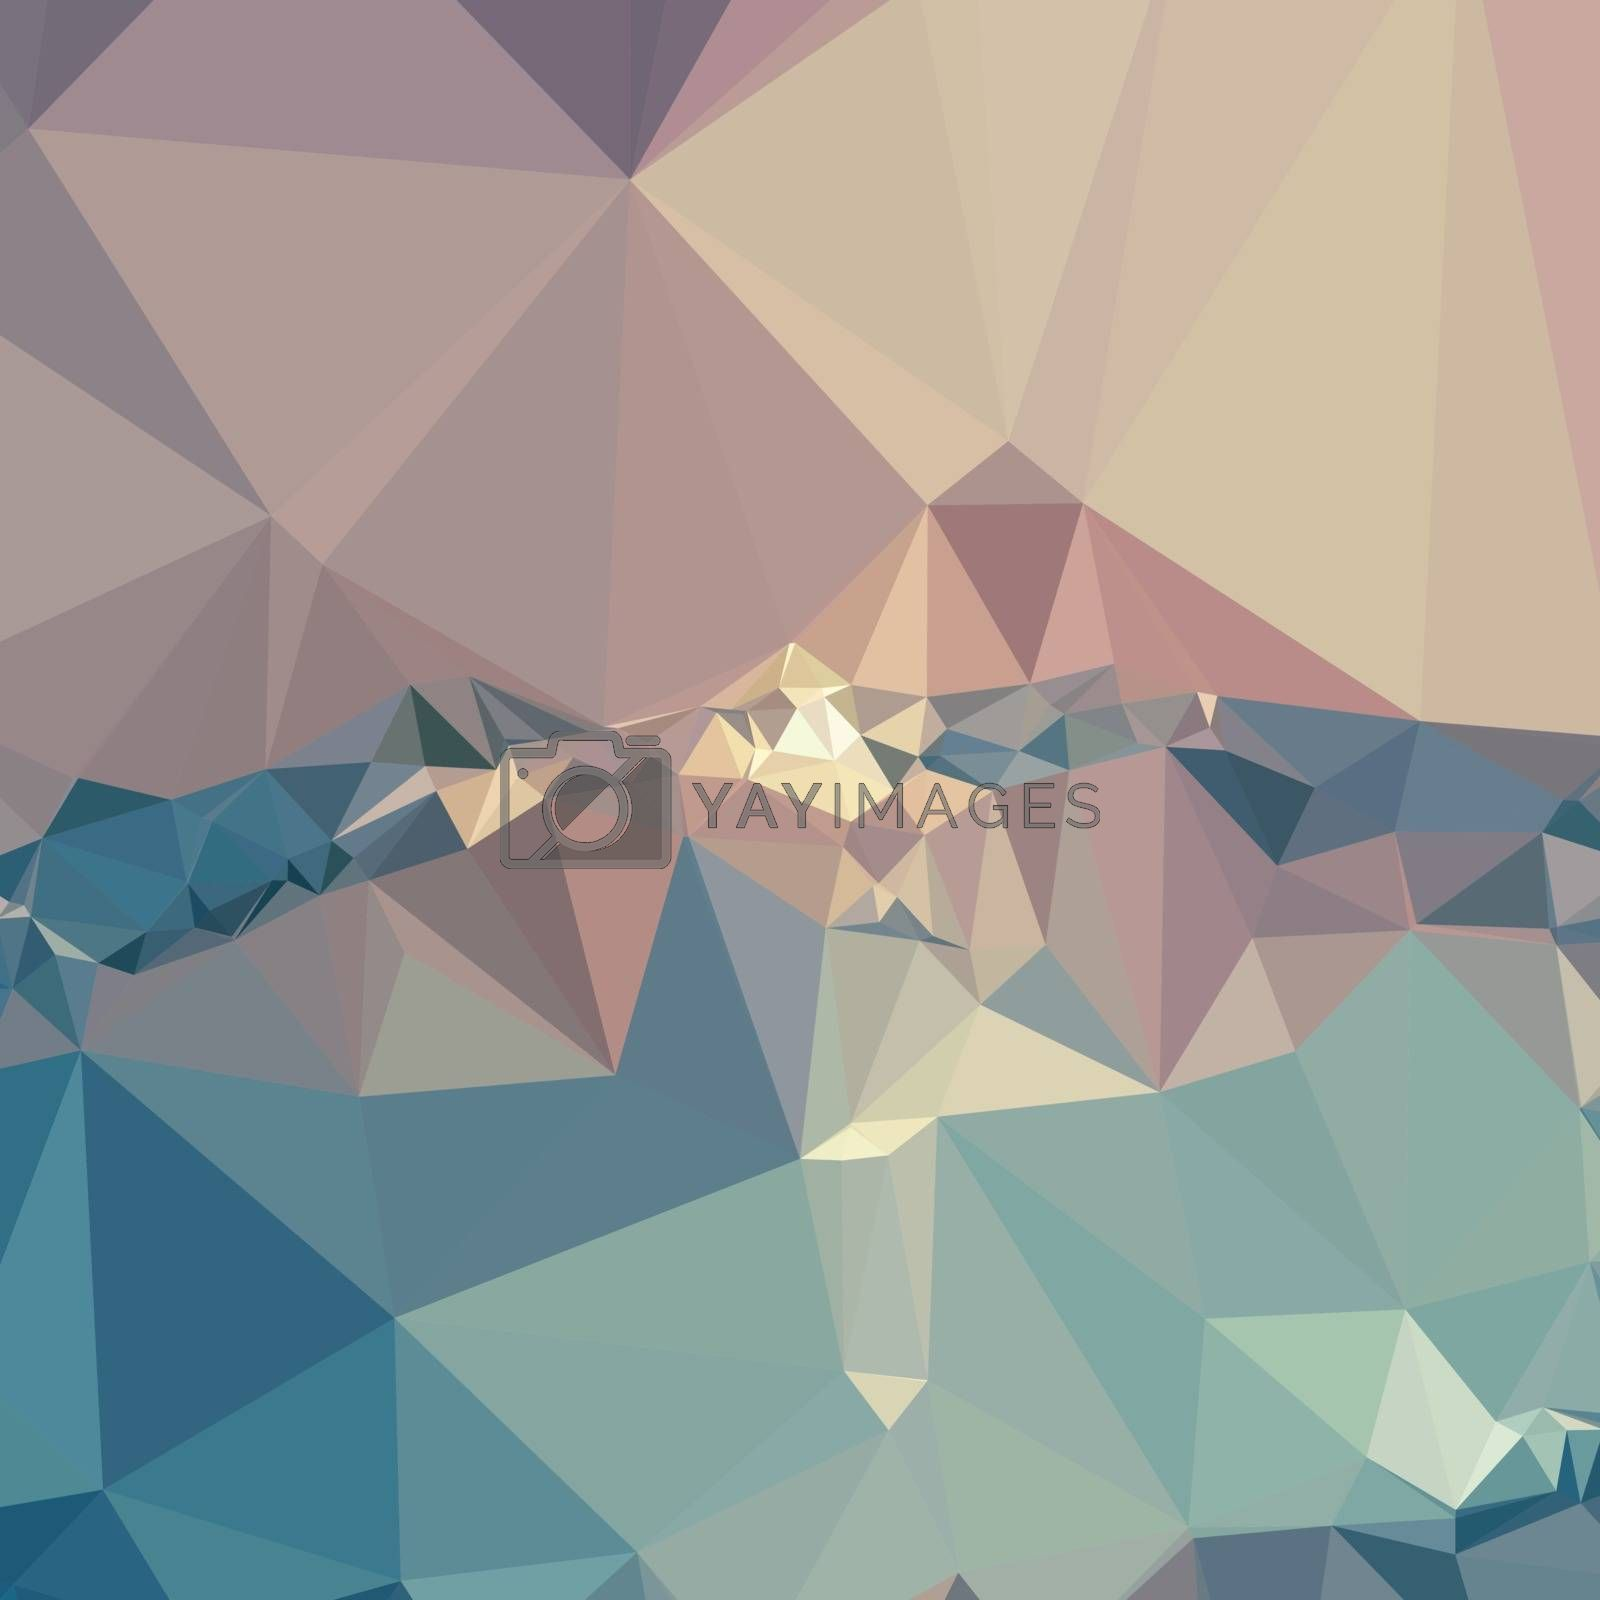 Low polygon style illustration of opera mauve abstract geometric background.